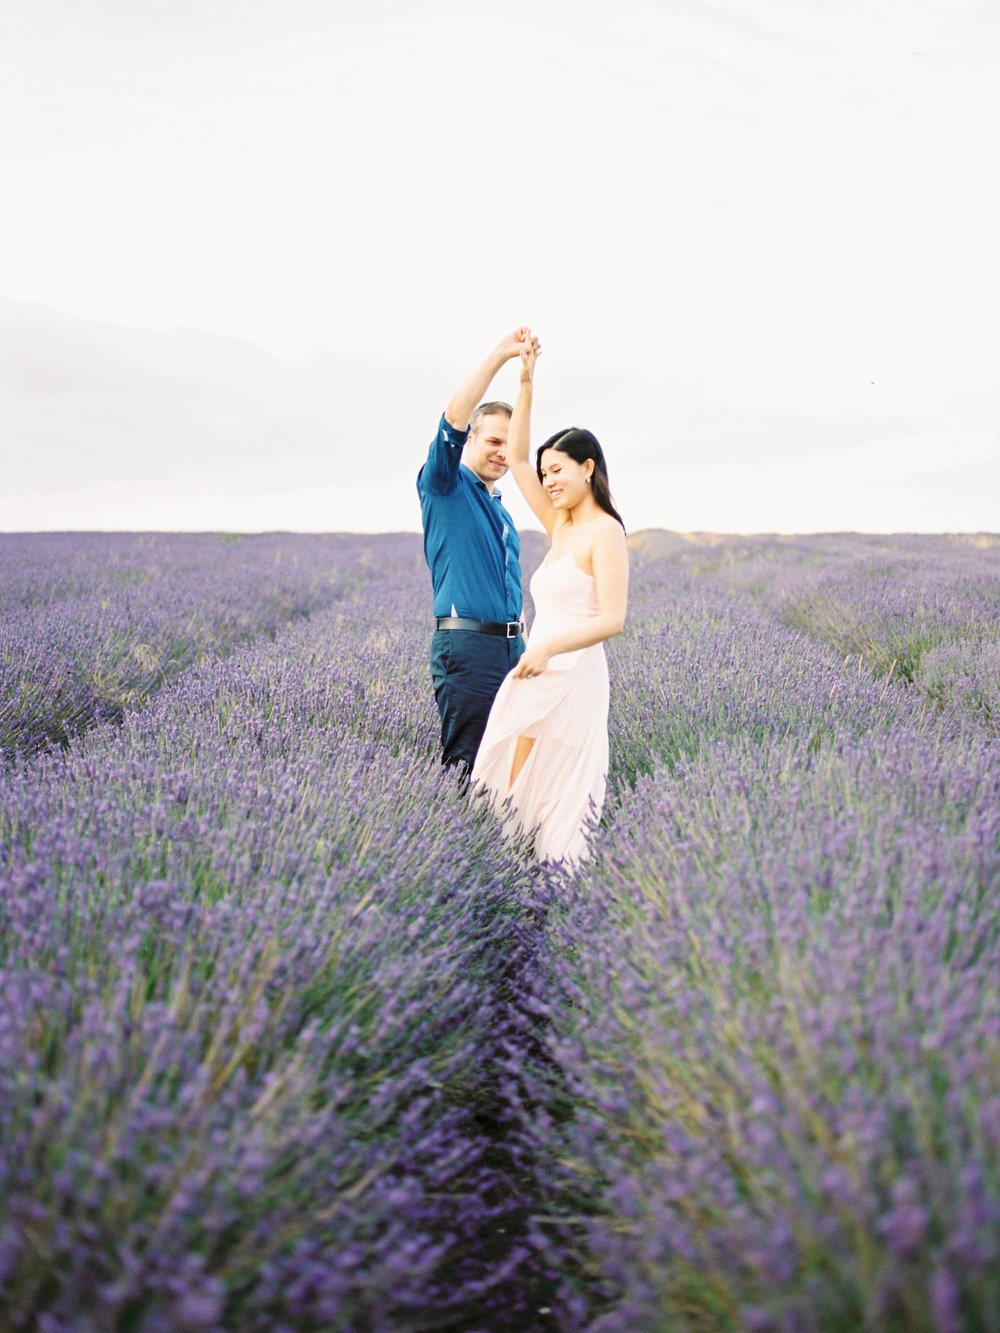 Amy O'Boyle Photography- Destination & UK Fine Art Film Wedding Photographer- Hitchin Lavender Engagement Shoot-31.jpg